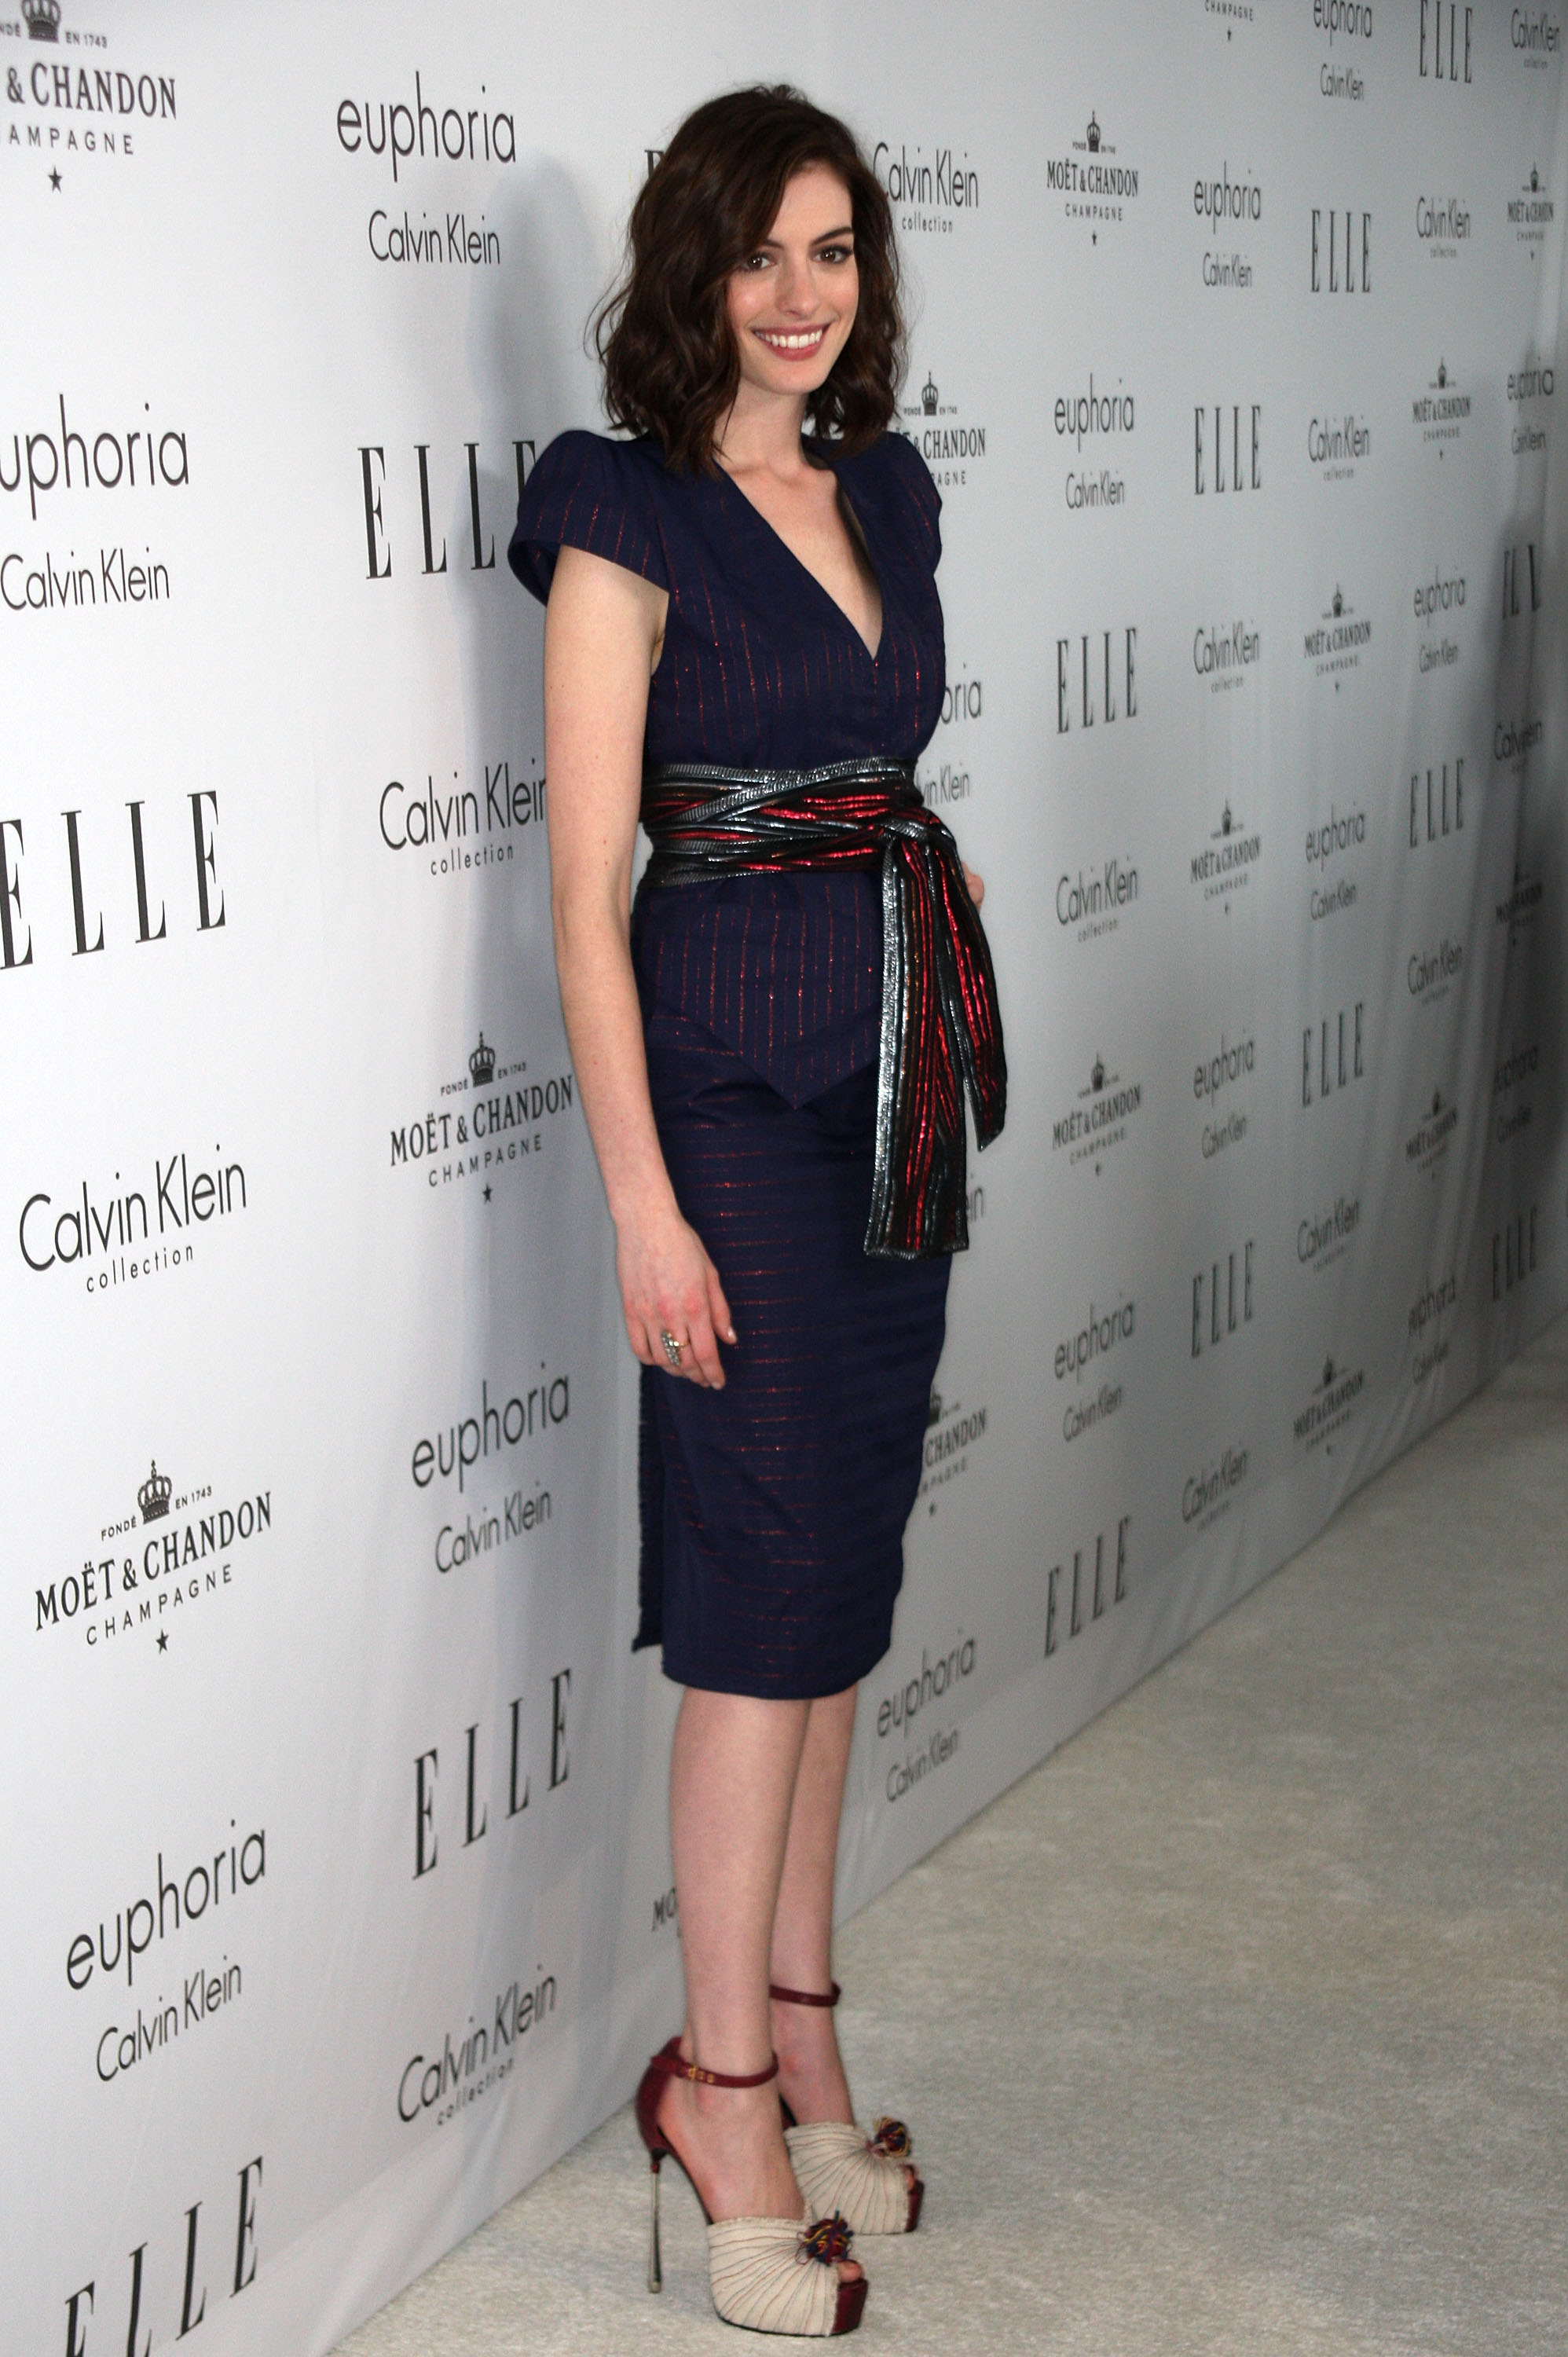 67658_Anne_Hathaway_2008-10-06_-_15th_annual_Women_In_Hollywood_Tribute_037_122_258lo.jpg